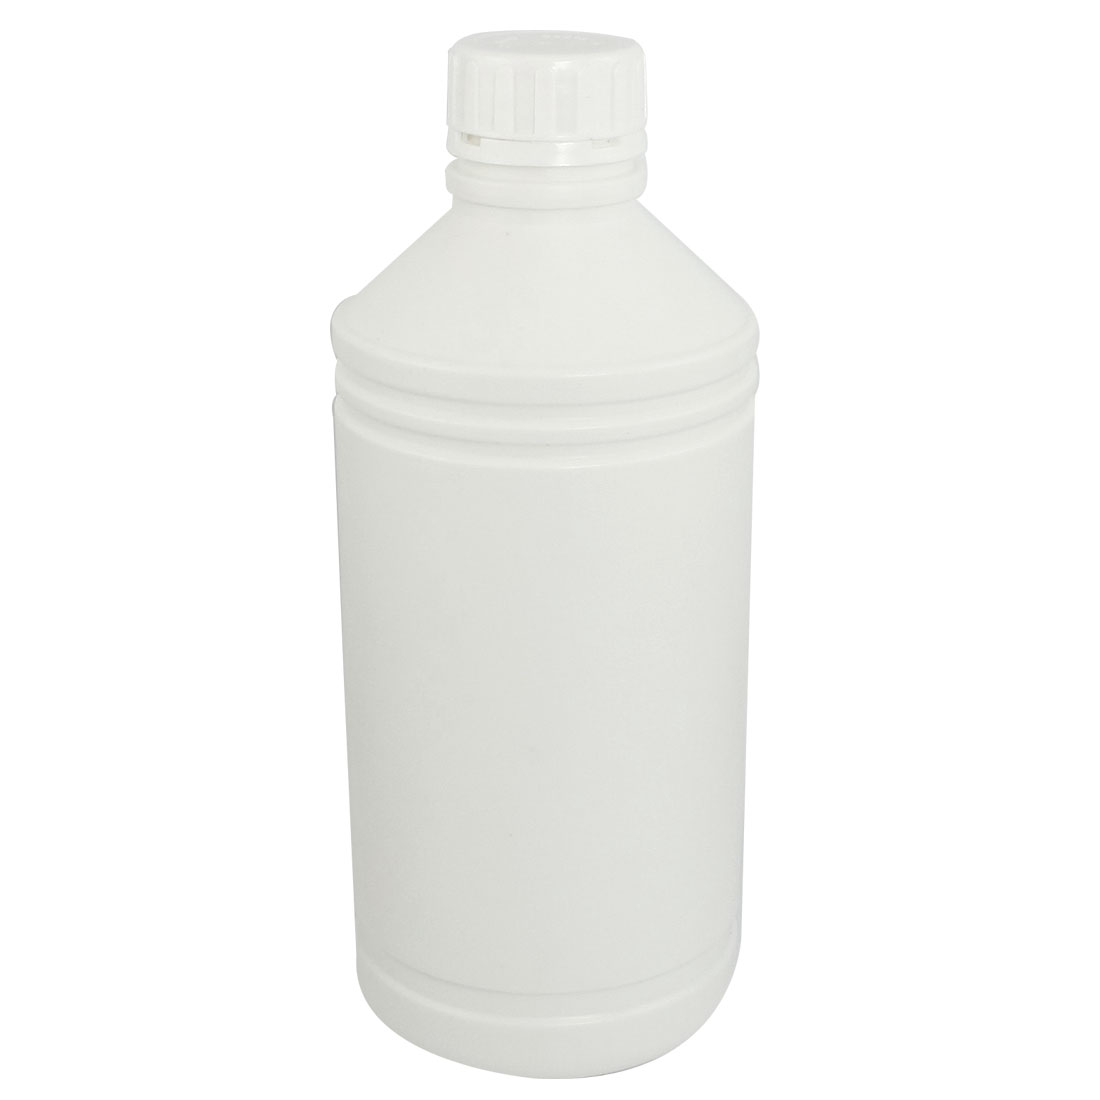 1000mL Capacity Chemical Storage Clear White Plastic Lab Bottle